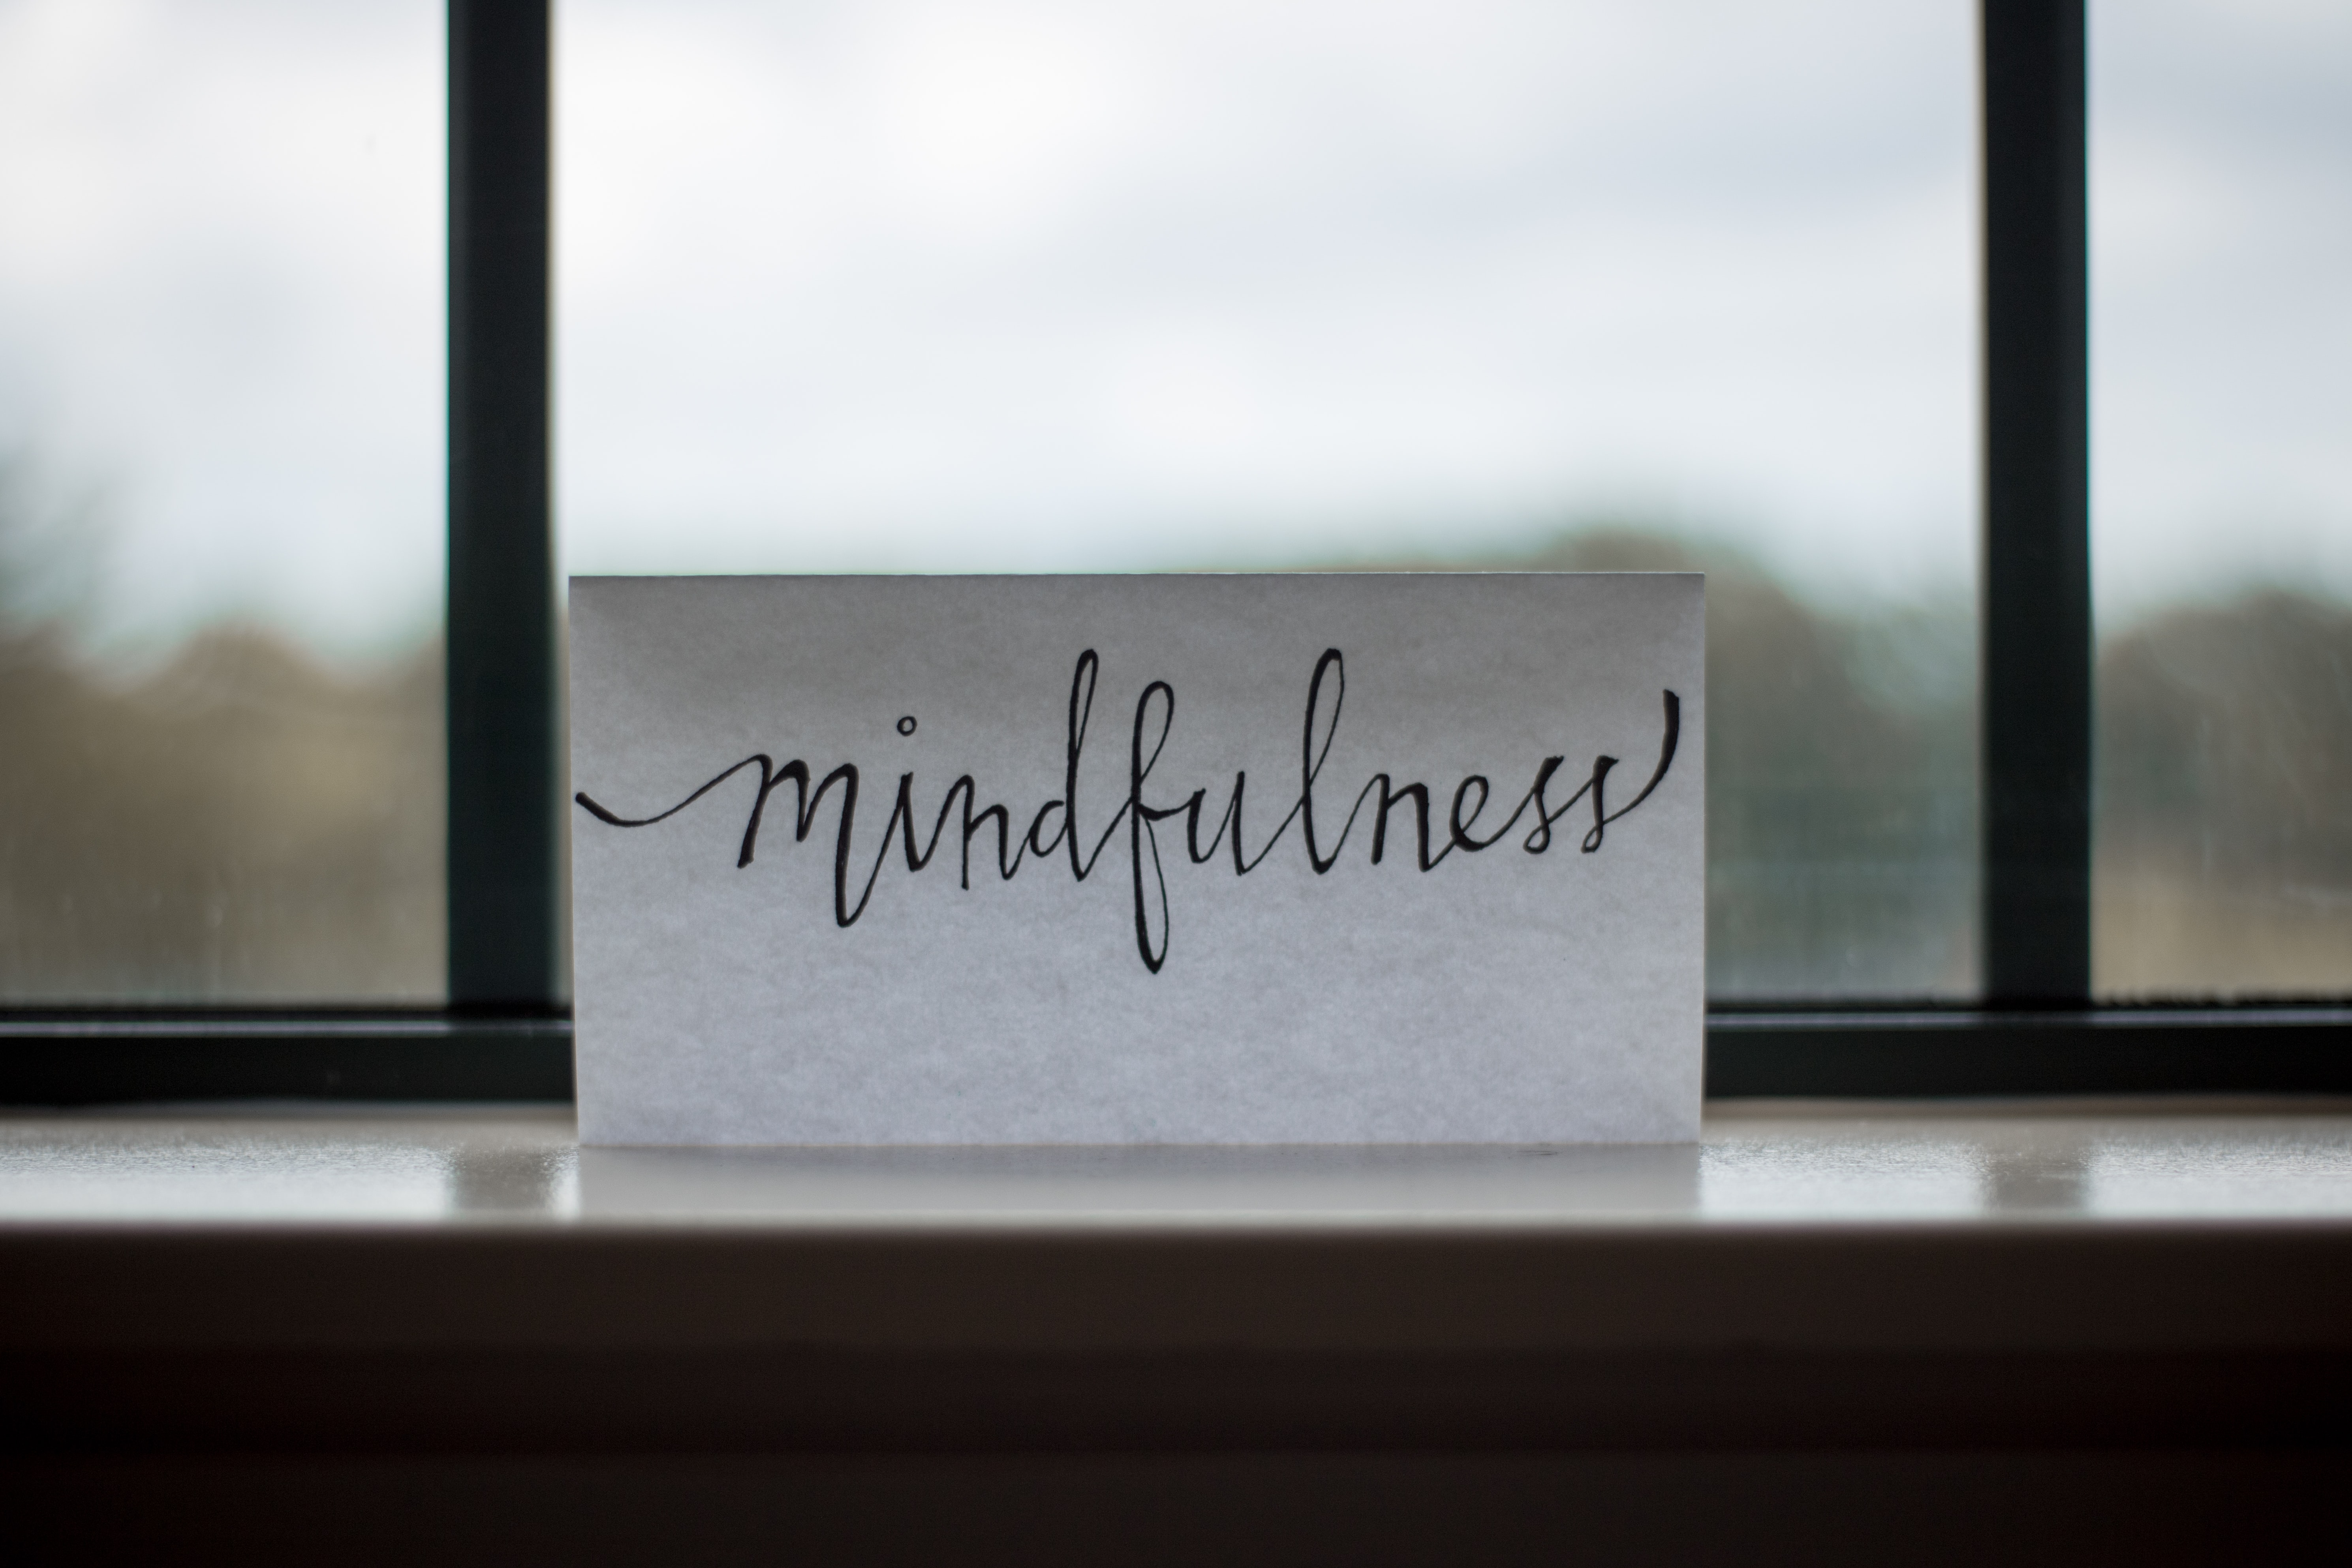 A sign with 'Mindfulness' handwritten on it in cursive script against a window